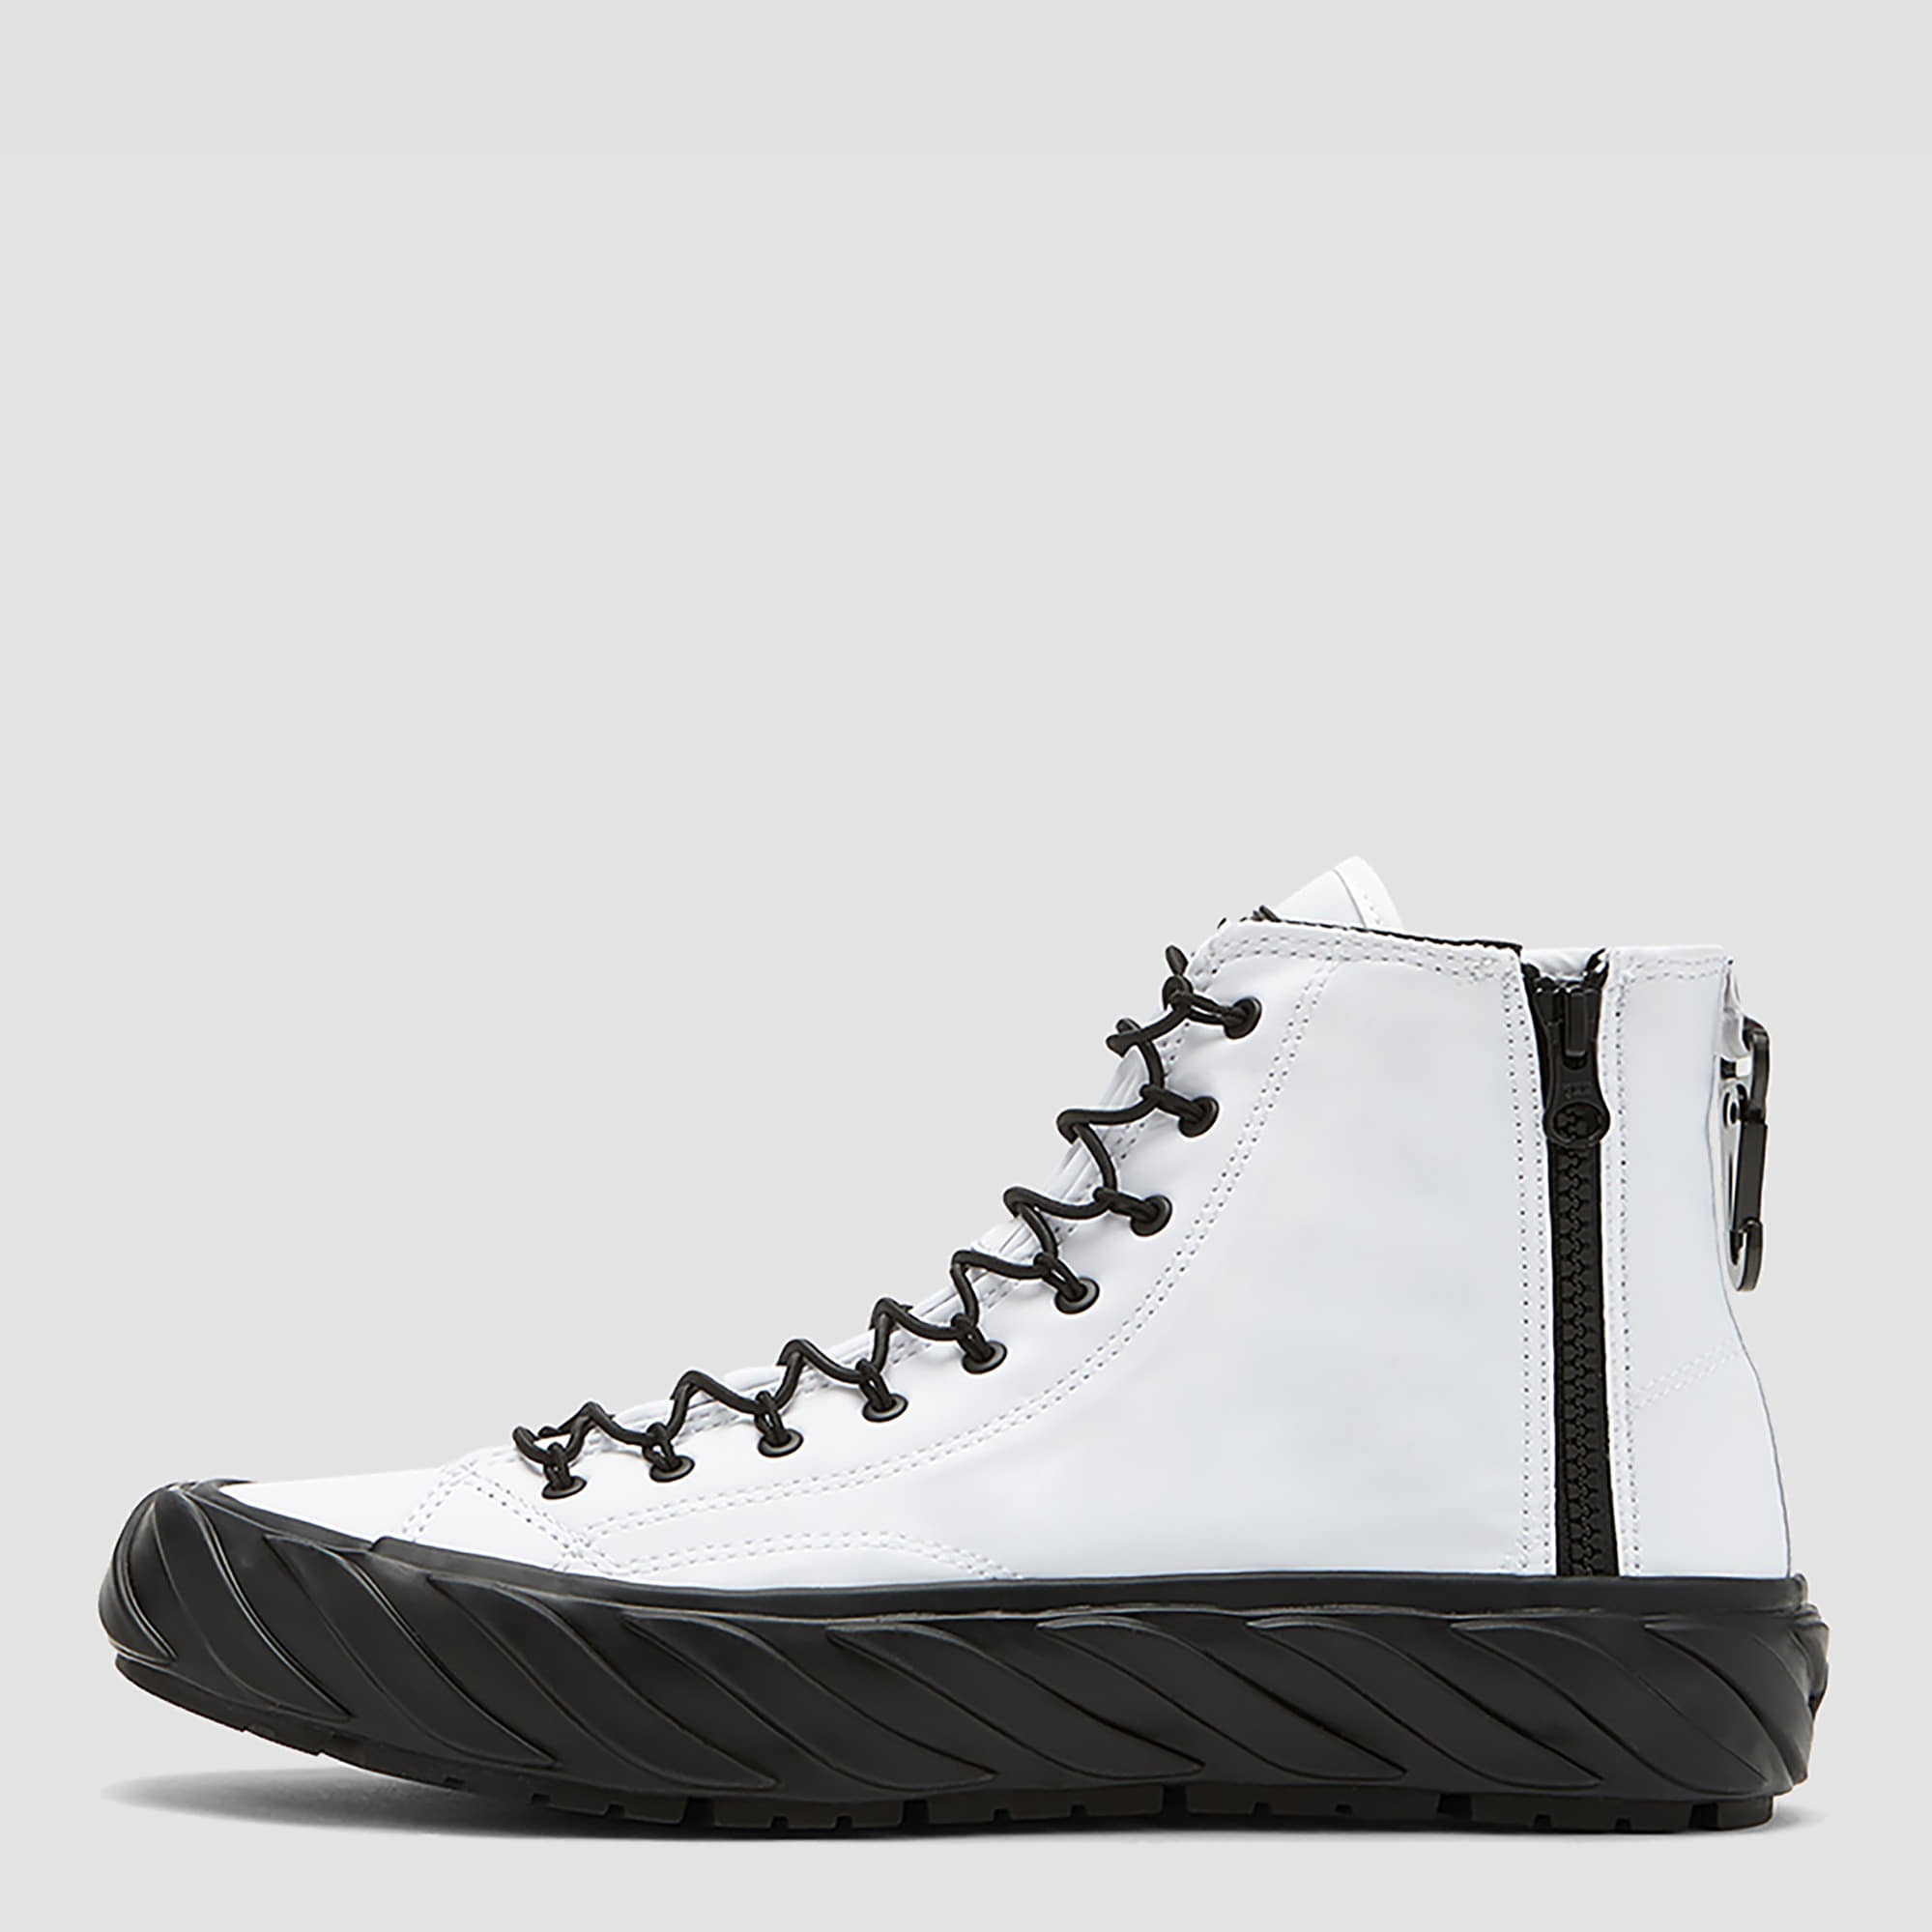 AGE TOP SNEAKERS KILLER WHALE